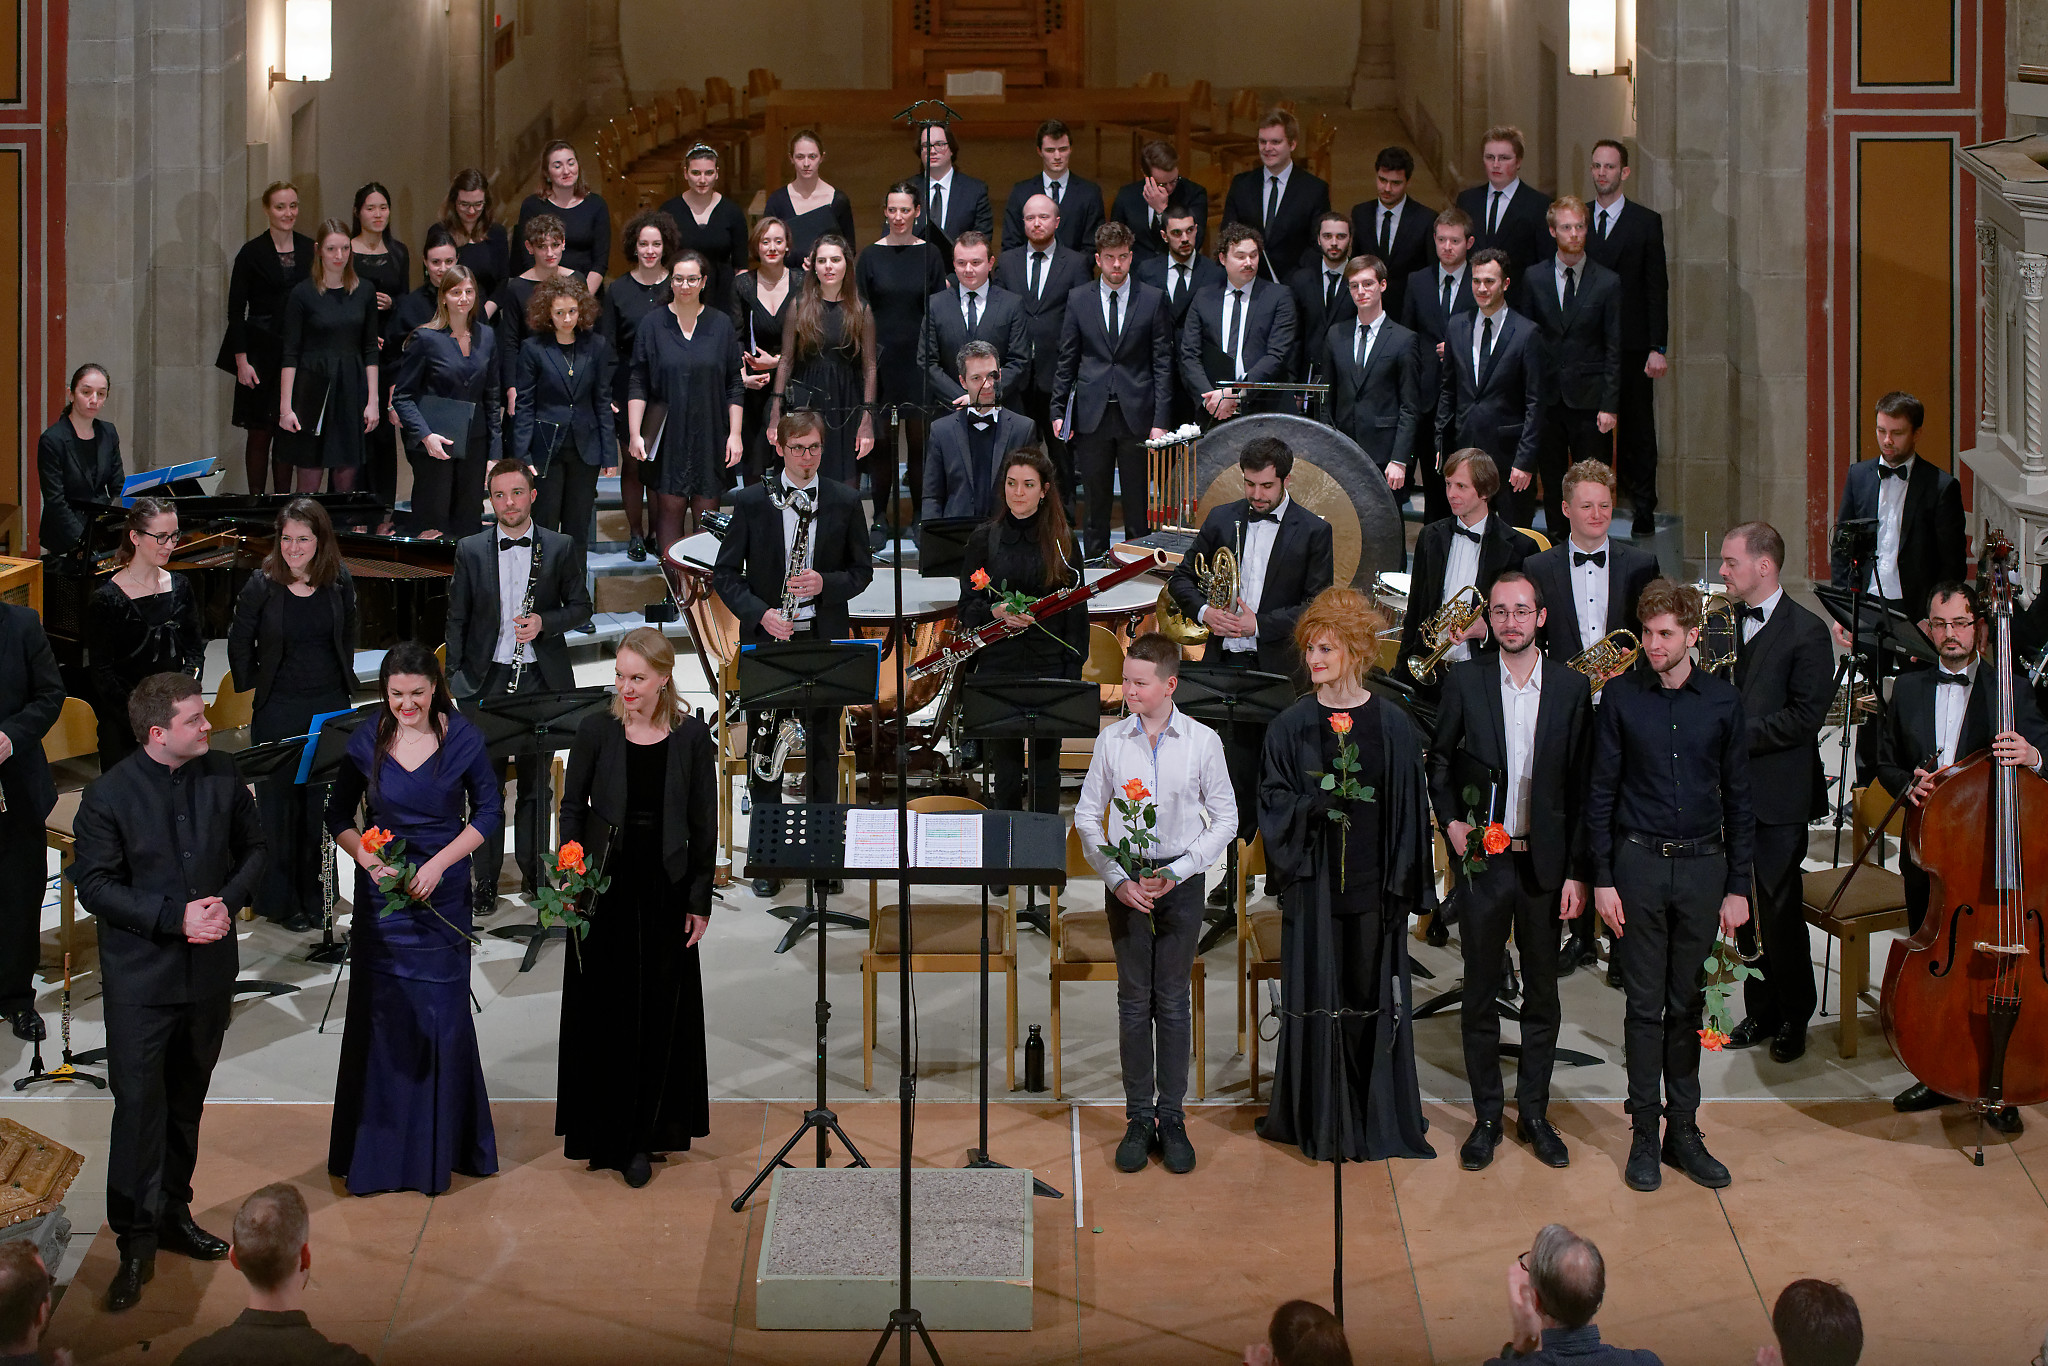 Christian Erny, Zurich Chamber Singers, OoE, Soloists @ Winterthur, 2020-01-19 (© Rolf Kyburz)